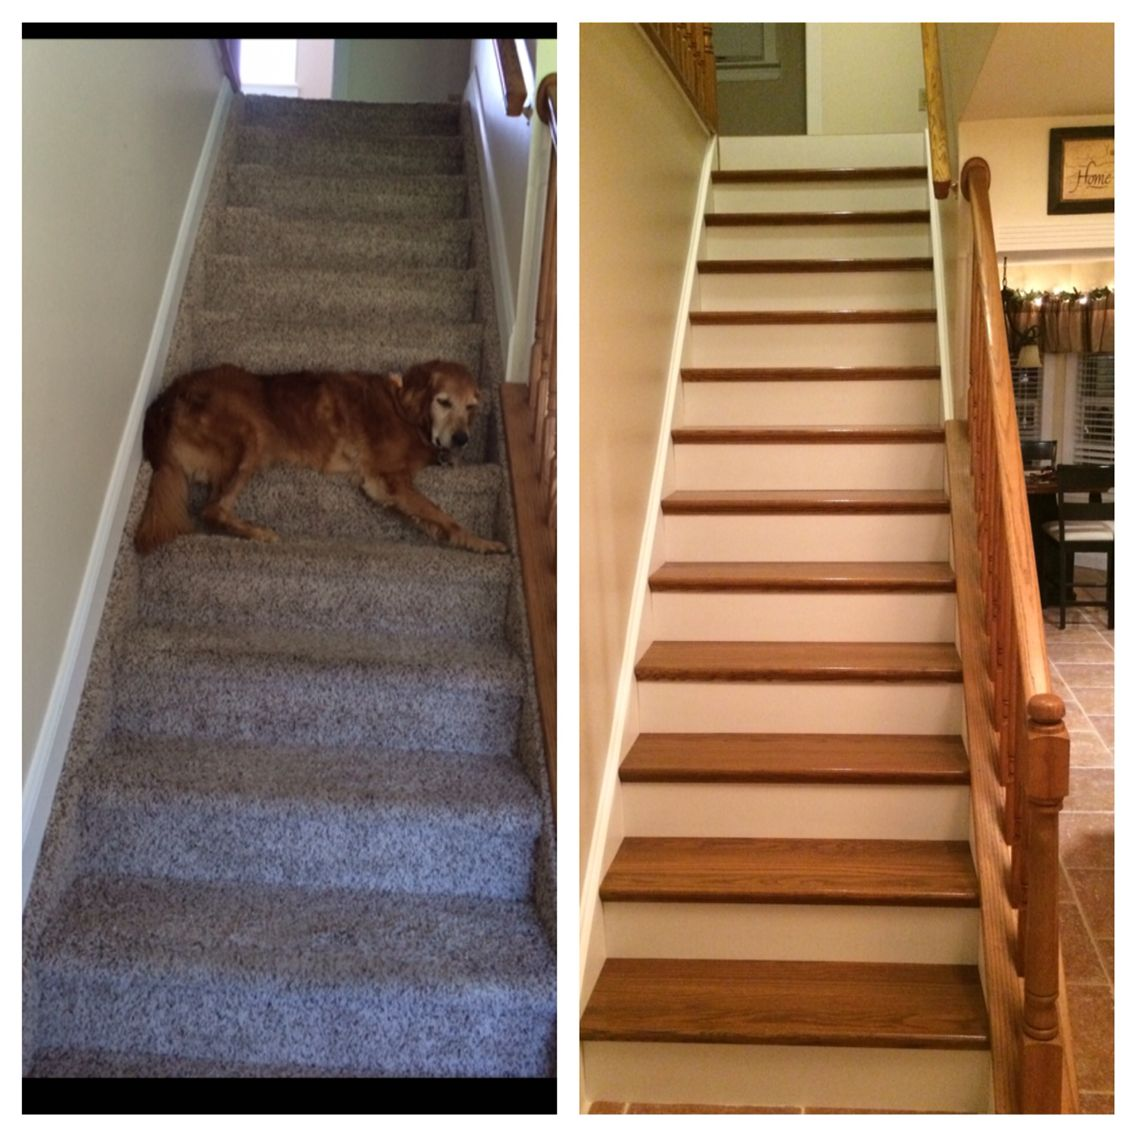 The before and after of our new staircase